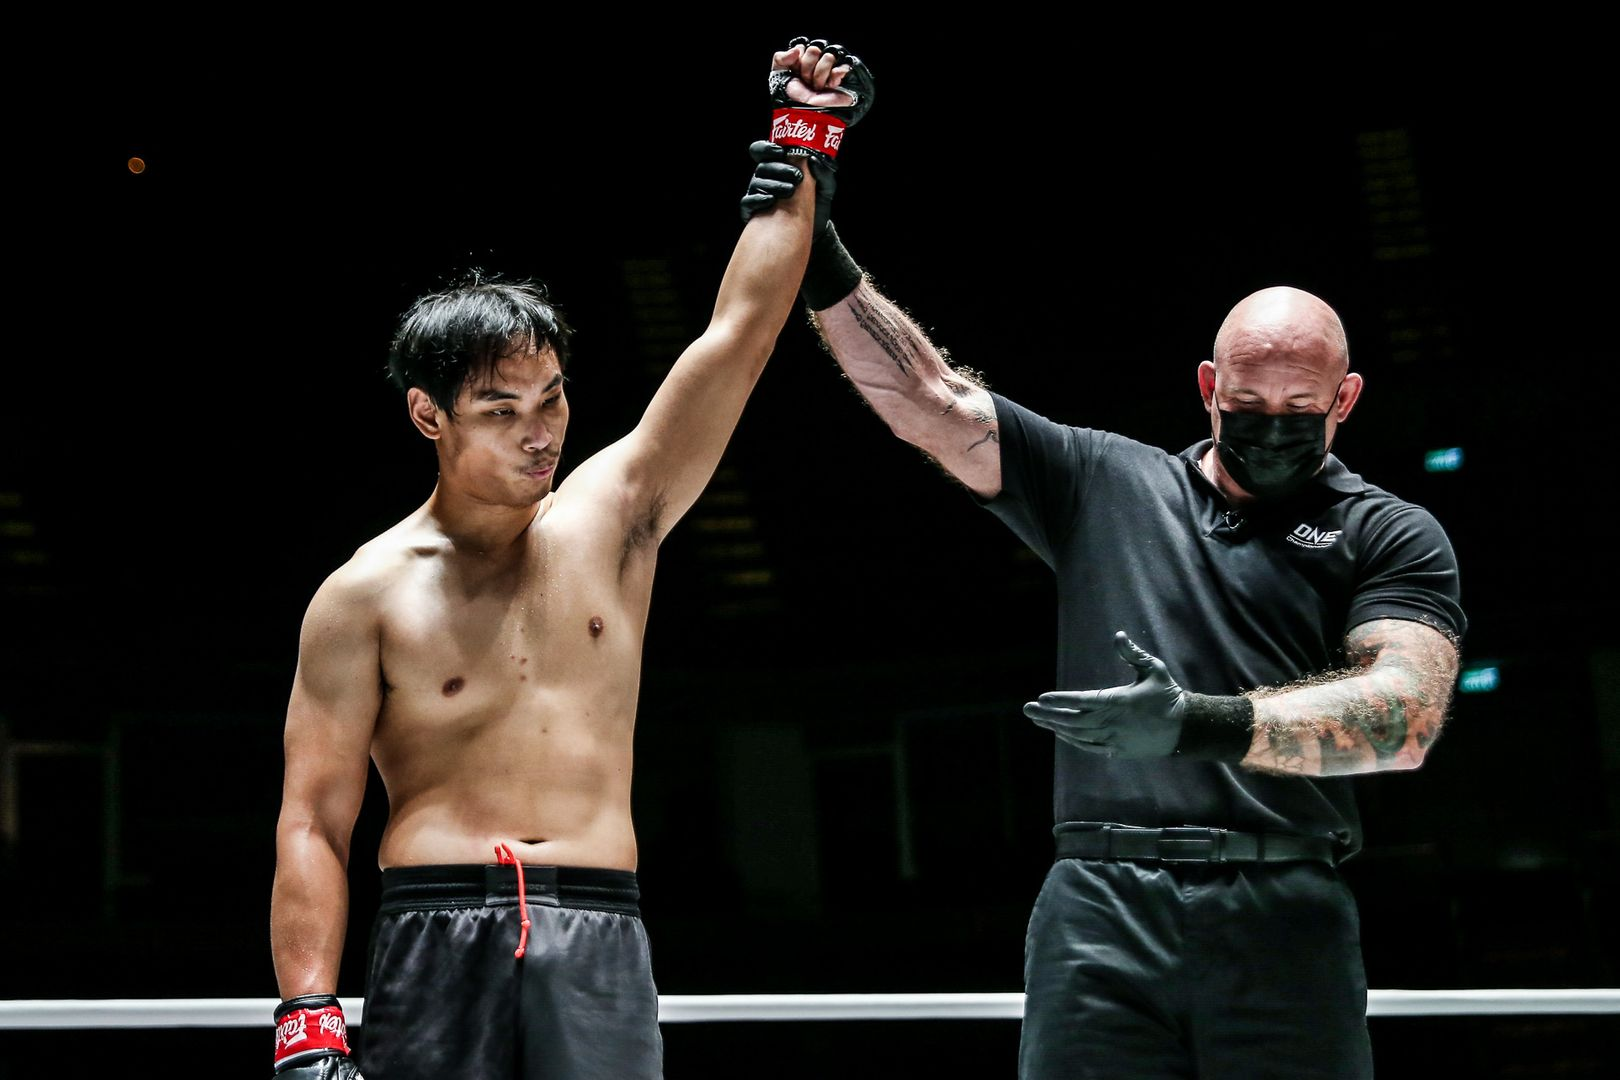 Witchayakorn Niamthanom with his arm raised following his debut victory